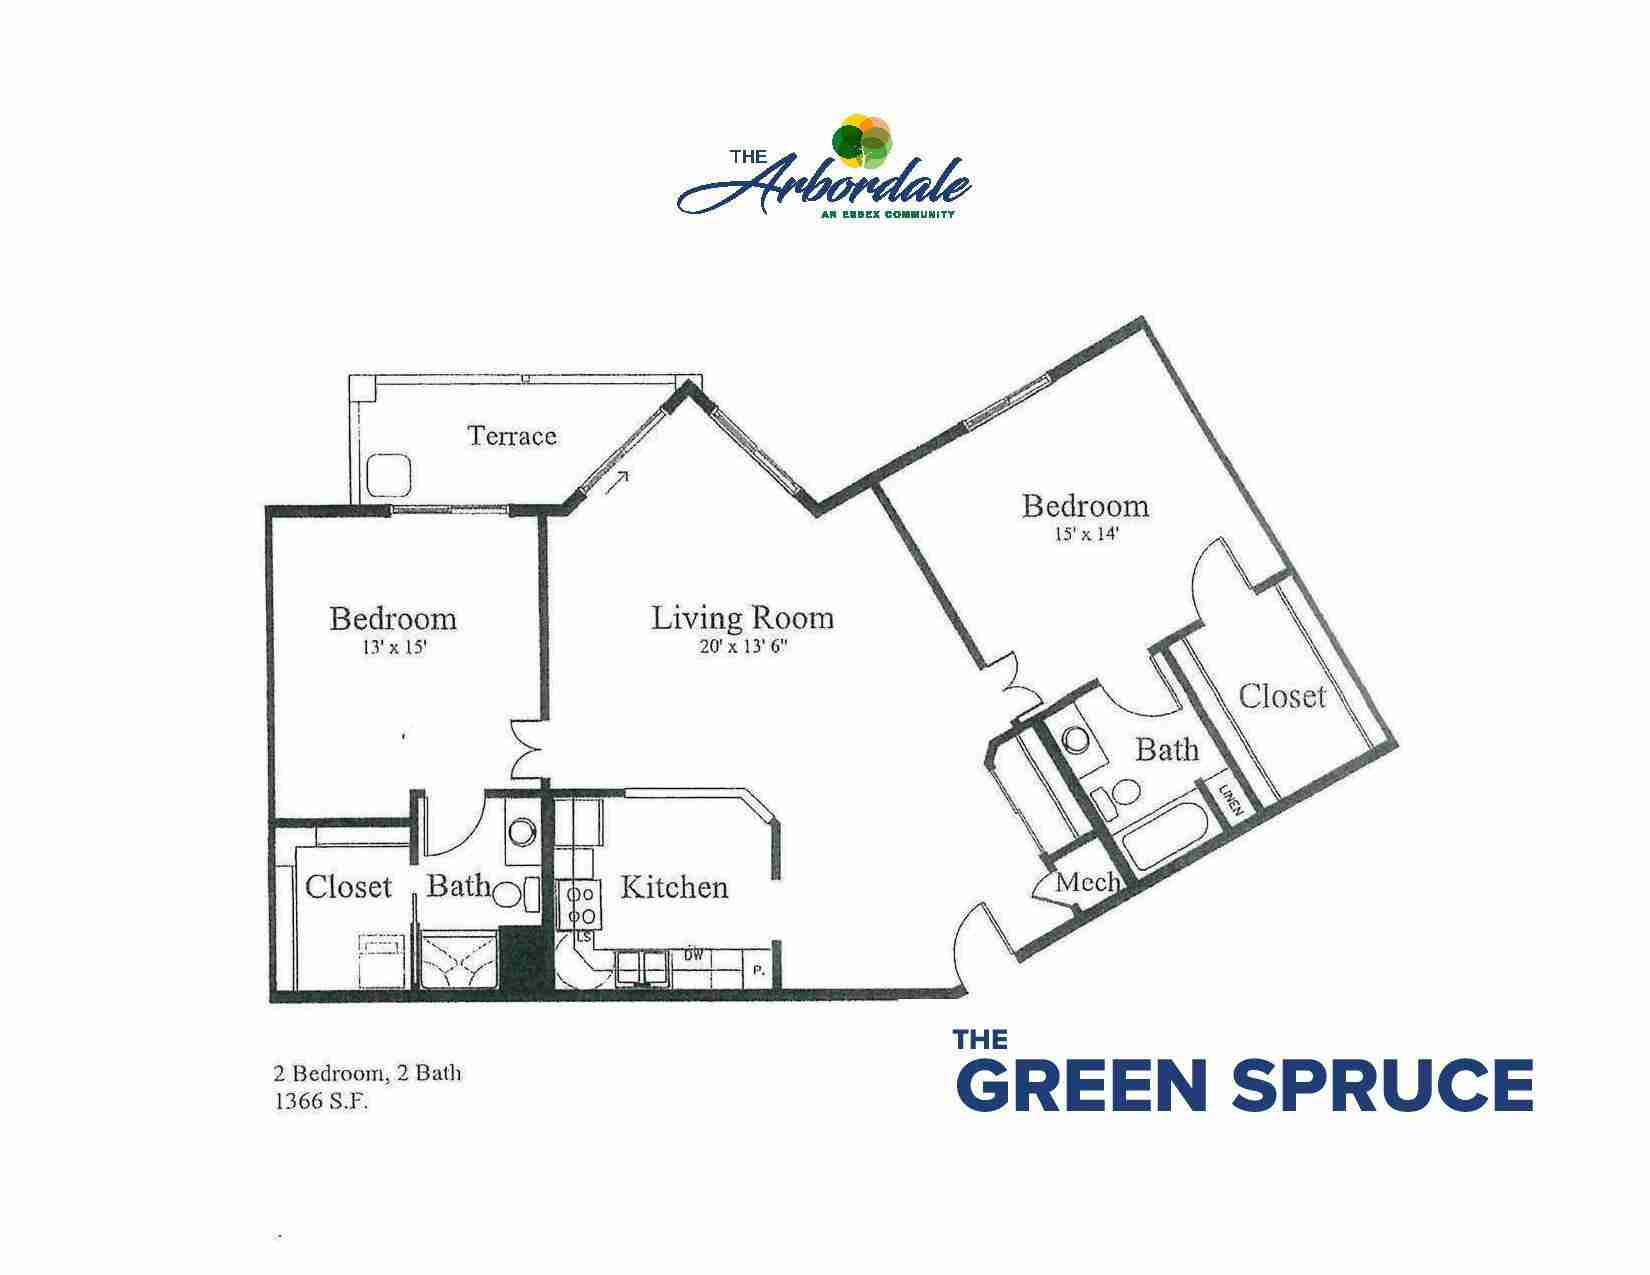 the green spruce floor plan, 2 bedroom, 2 bath, 1366 sq ft